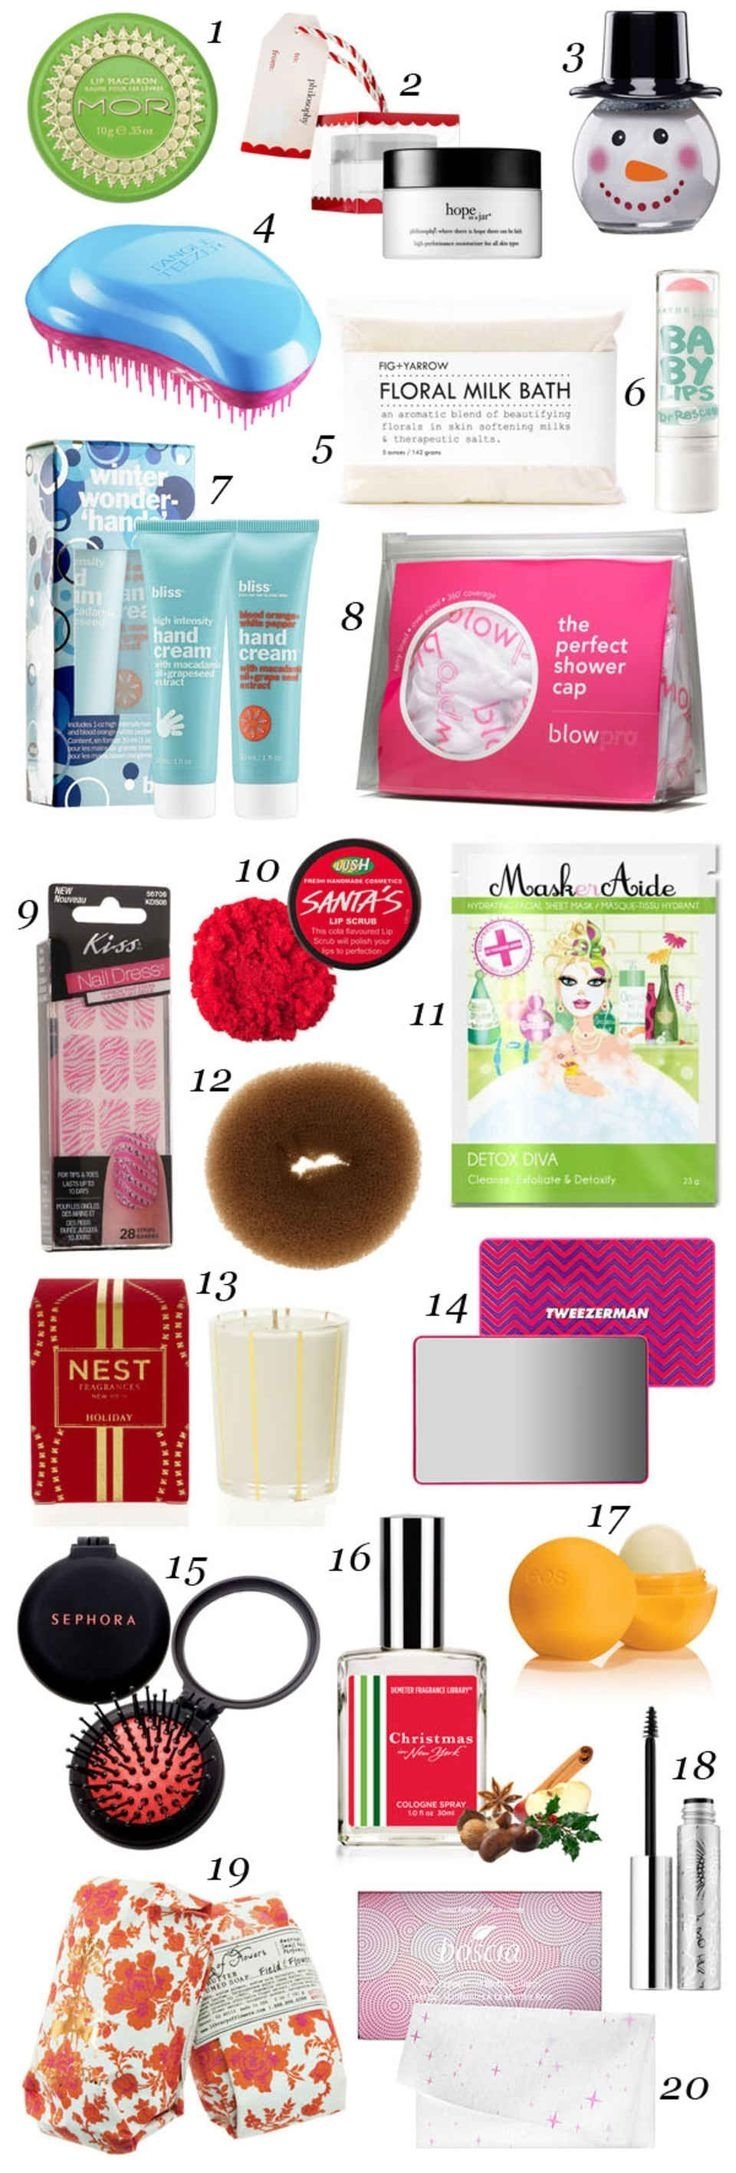 10 Spectacular 13 Year Old Girl Gift Ideas 1063 best gift ideas images on pinterest gift ideas birthdays and 1